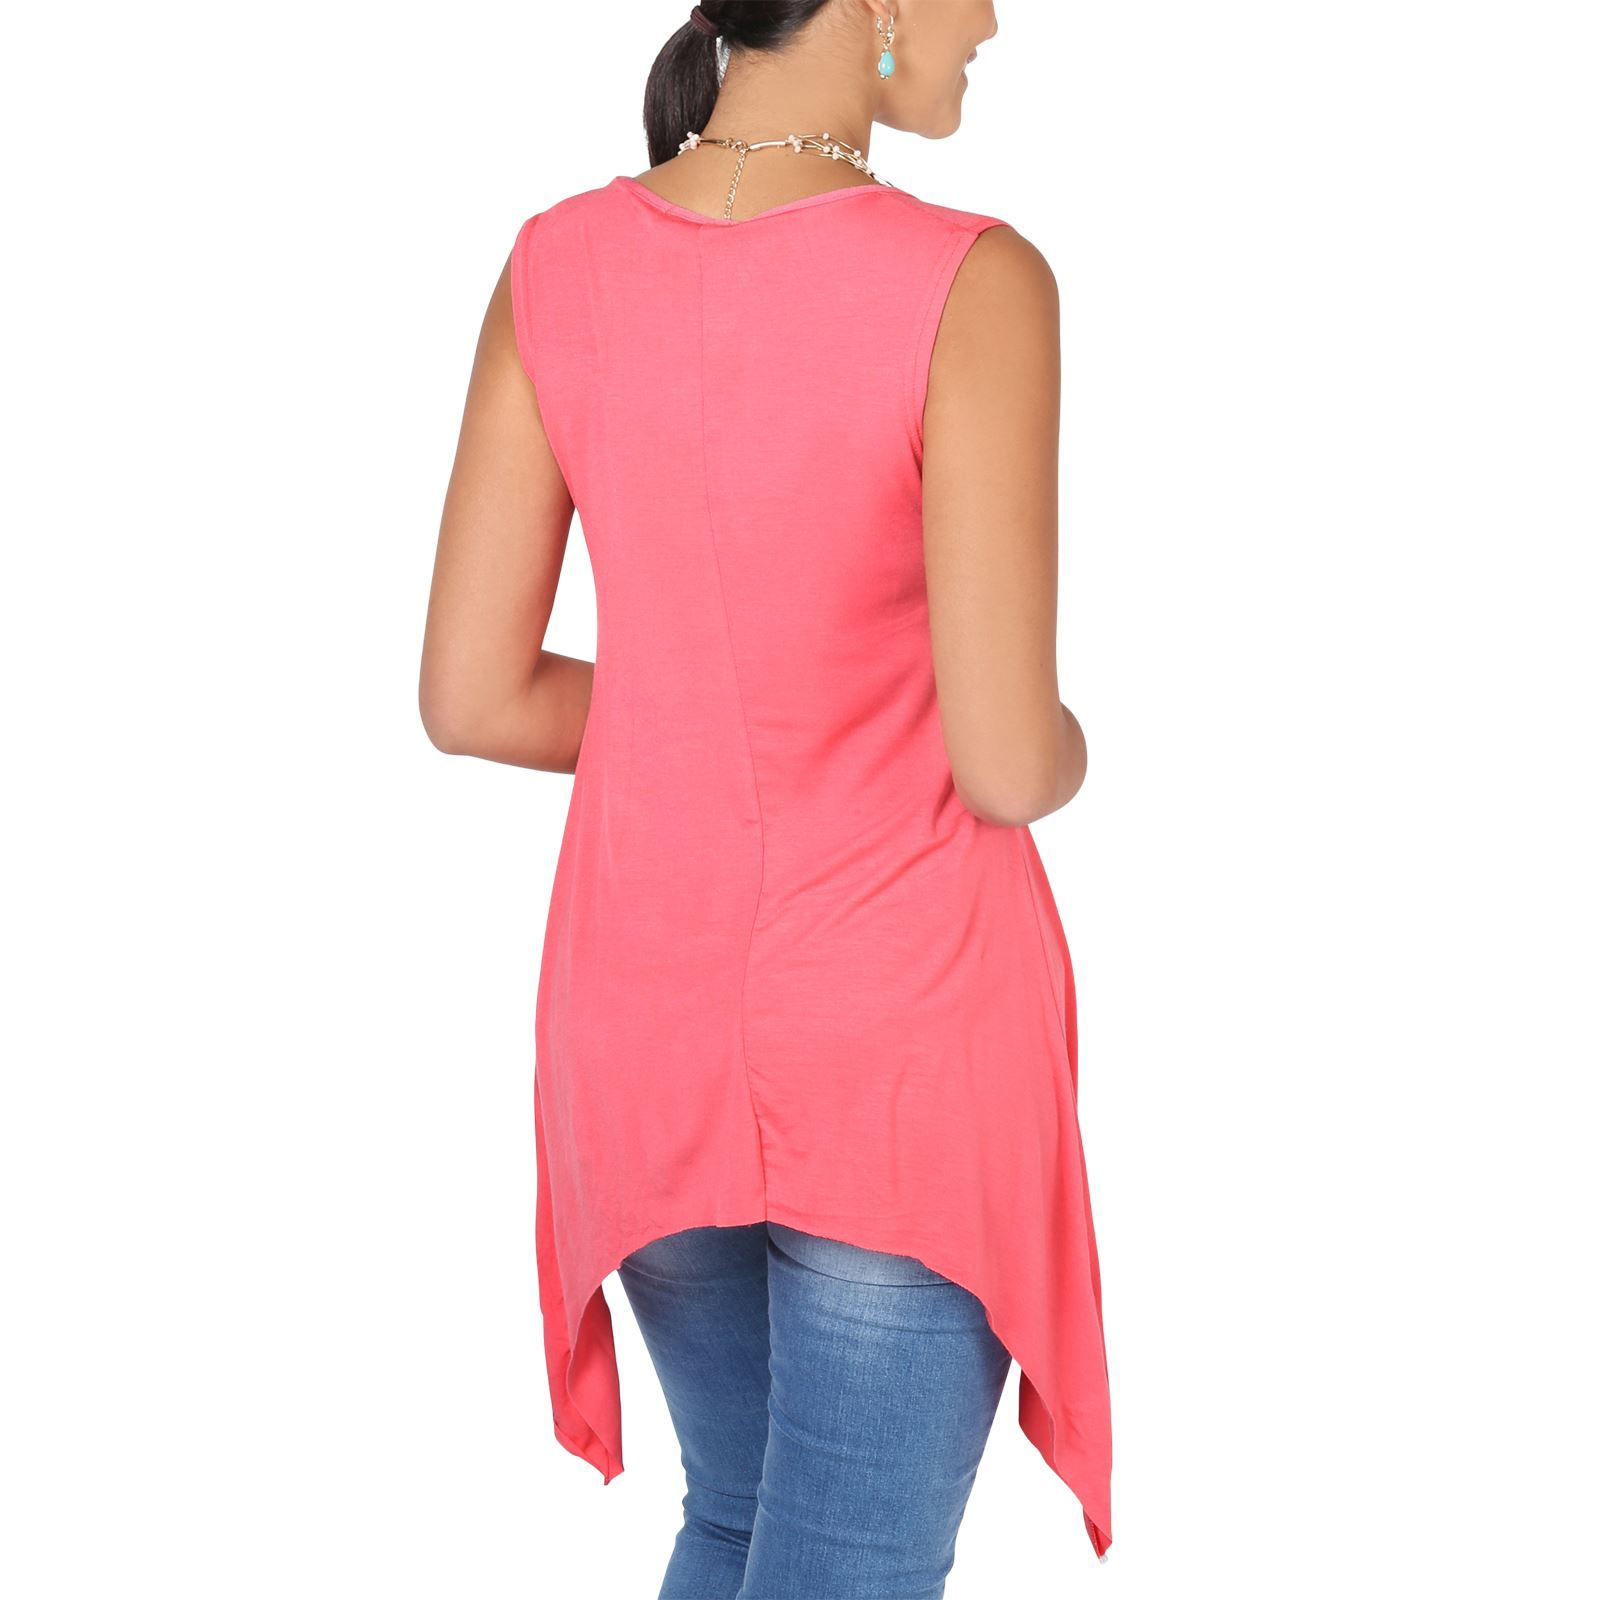 Women-Long-Top-Sleeveless-Pleated-Tee-Shirt-Tunic-Jersey-Stretch-Loose-Fit thumbnail 11